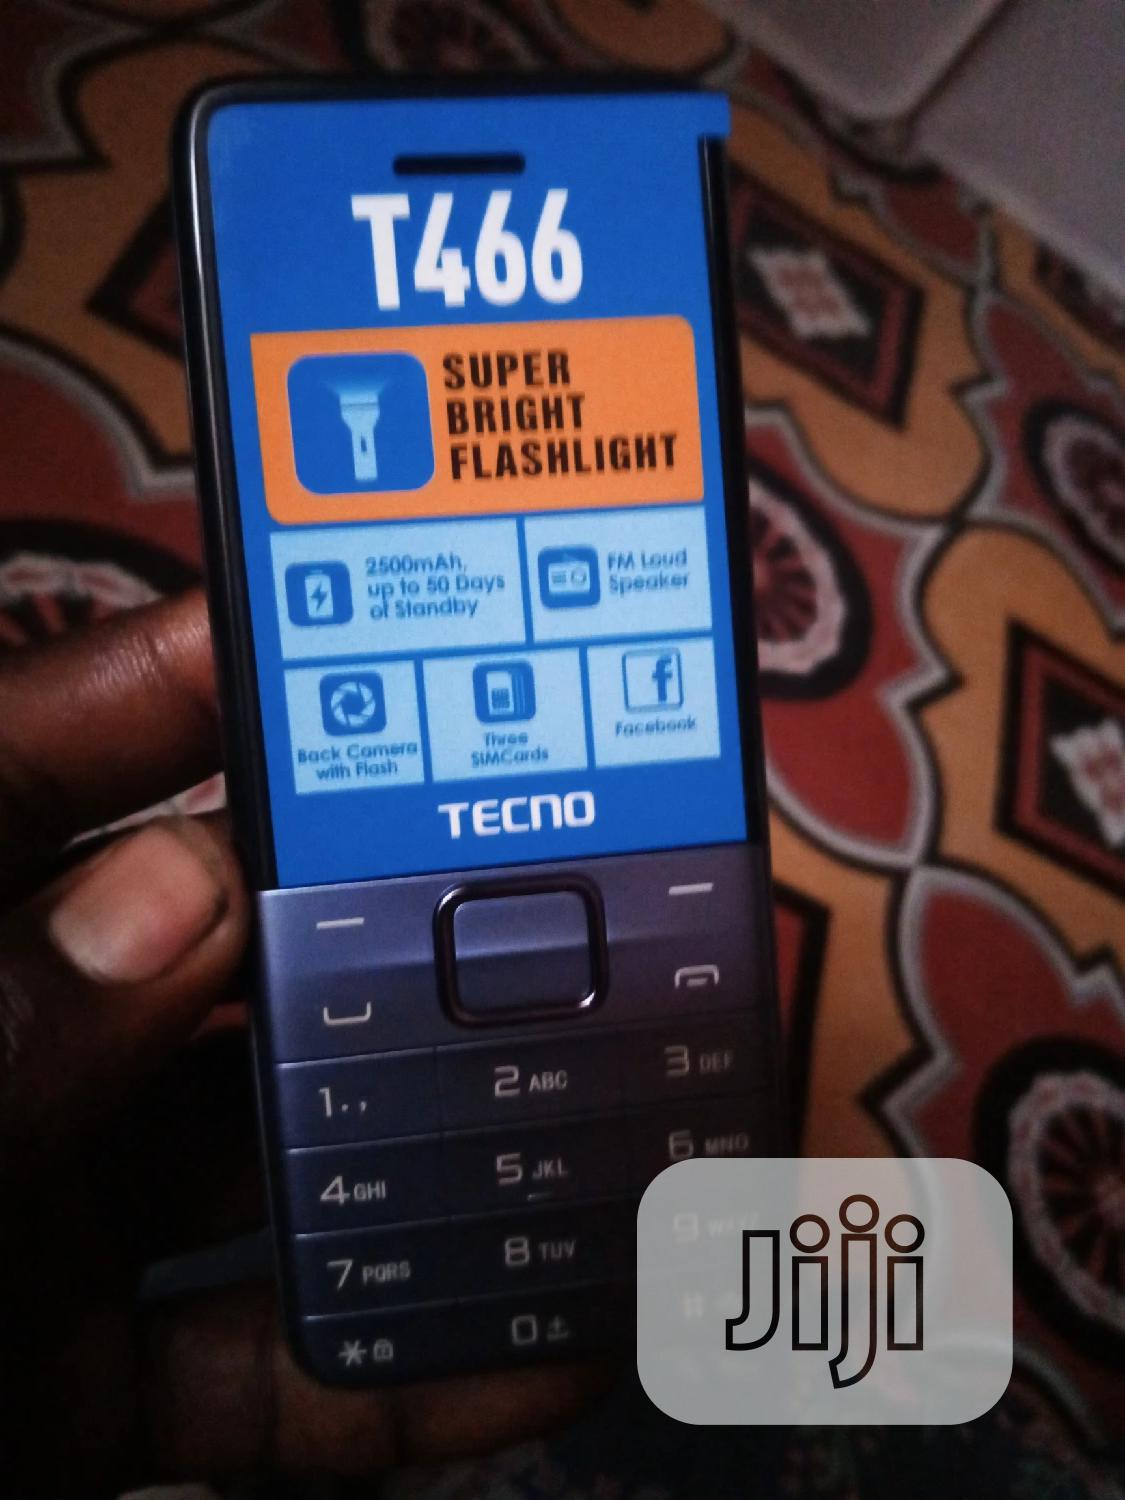 New Tecno T466 Blue